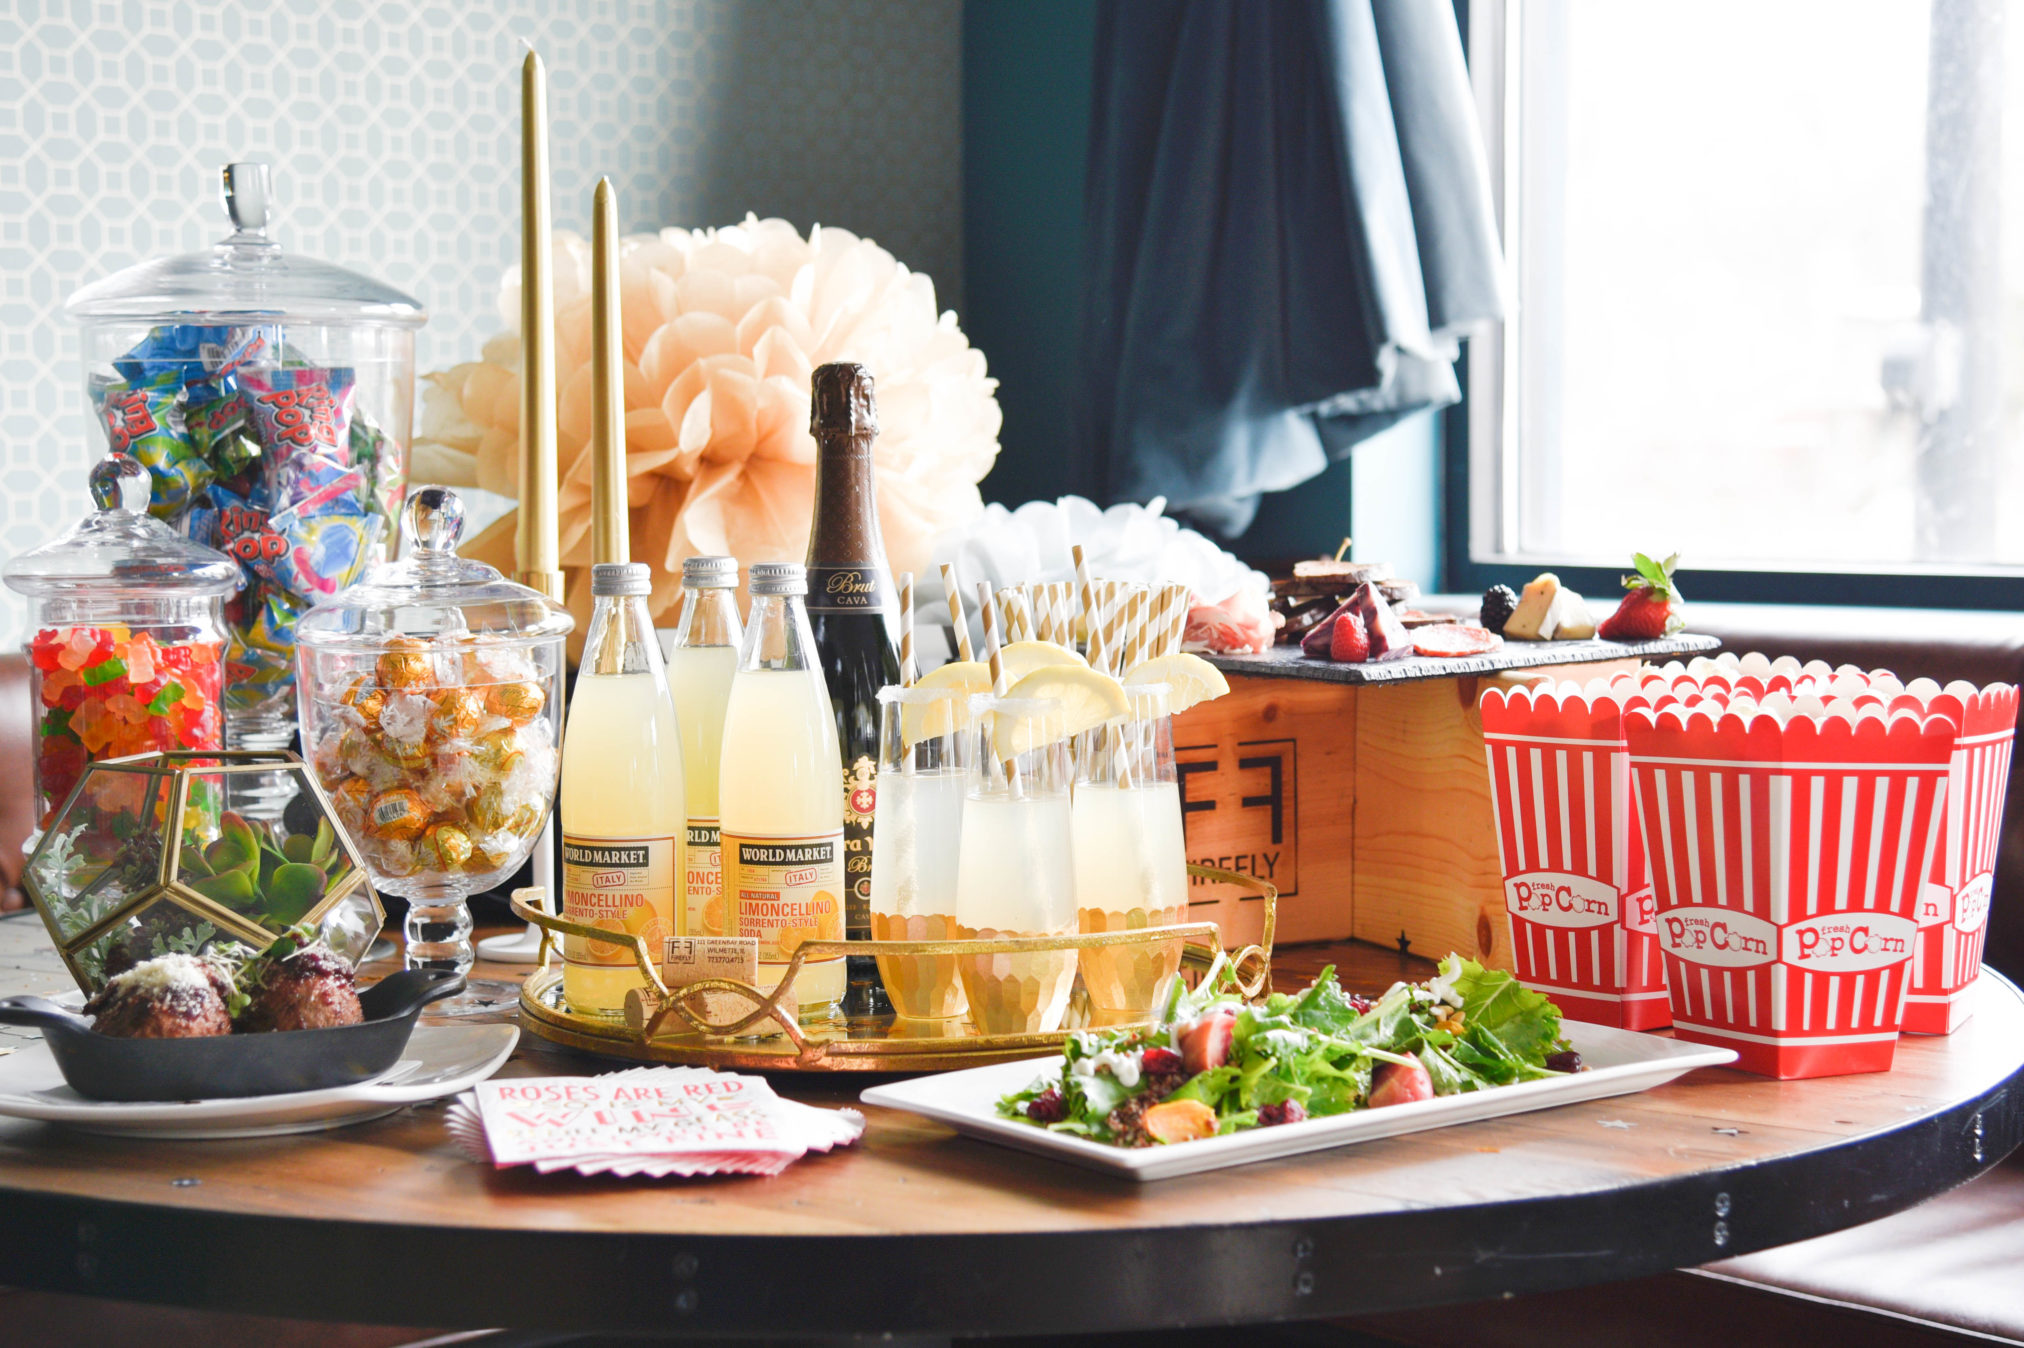 Oscar season is here and hosting a party can be easy, it's all about displaying those drinks and treats, some candy and champagne does the trick. find out more at www.homewithkeki.com